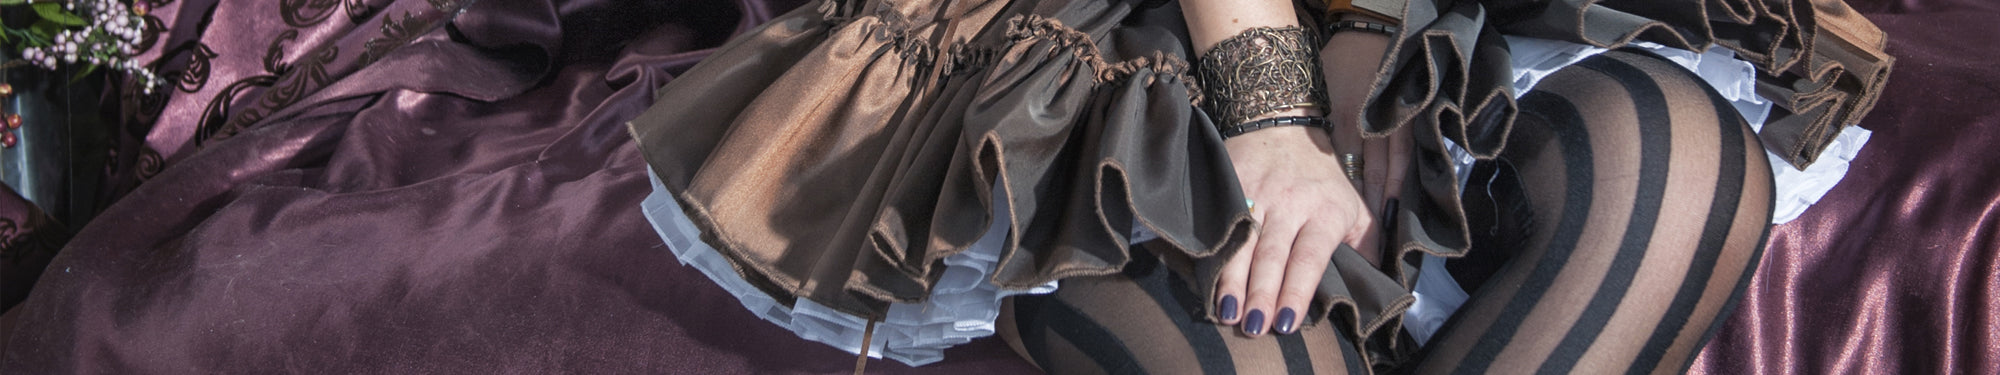 Steampunk Skirts & Steampunk Trousers. A Unique Selection of Splendid Steampunk, Gothic and Victorian Skirts and Bustles are available here